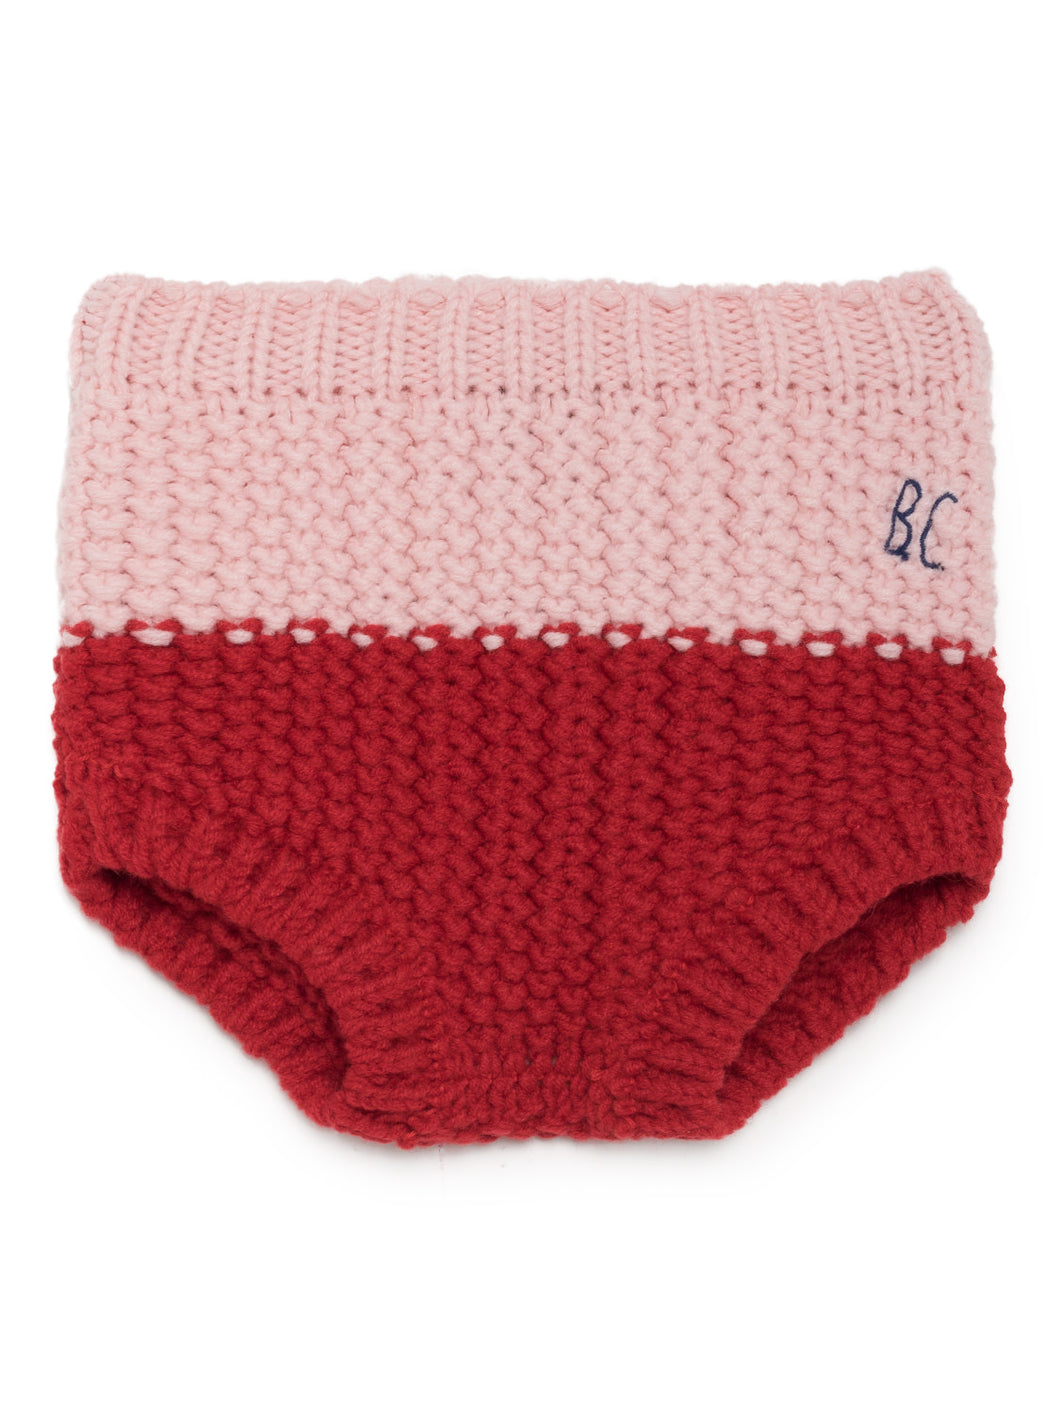 Bobo Choses Baby Red Knitted Culotte